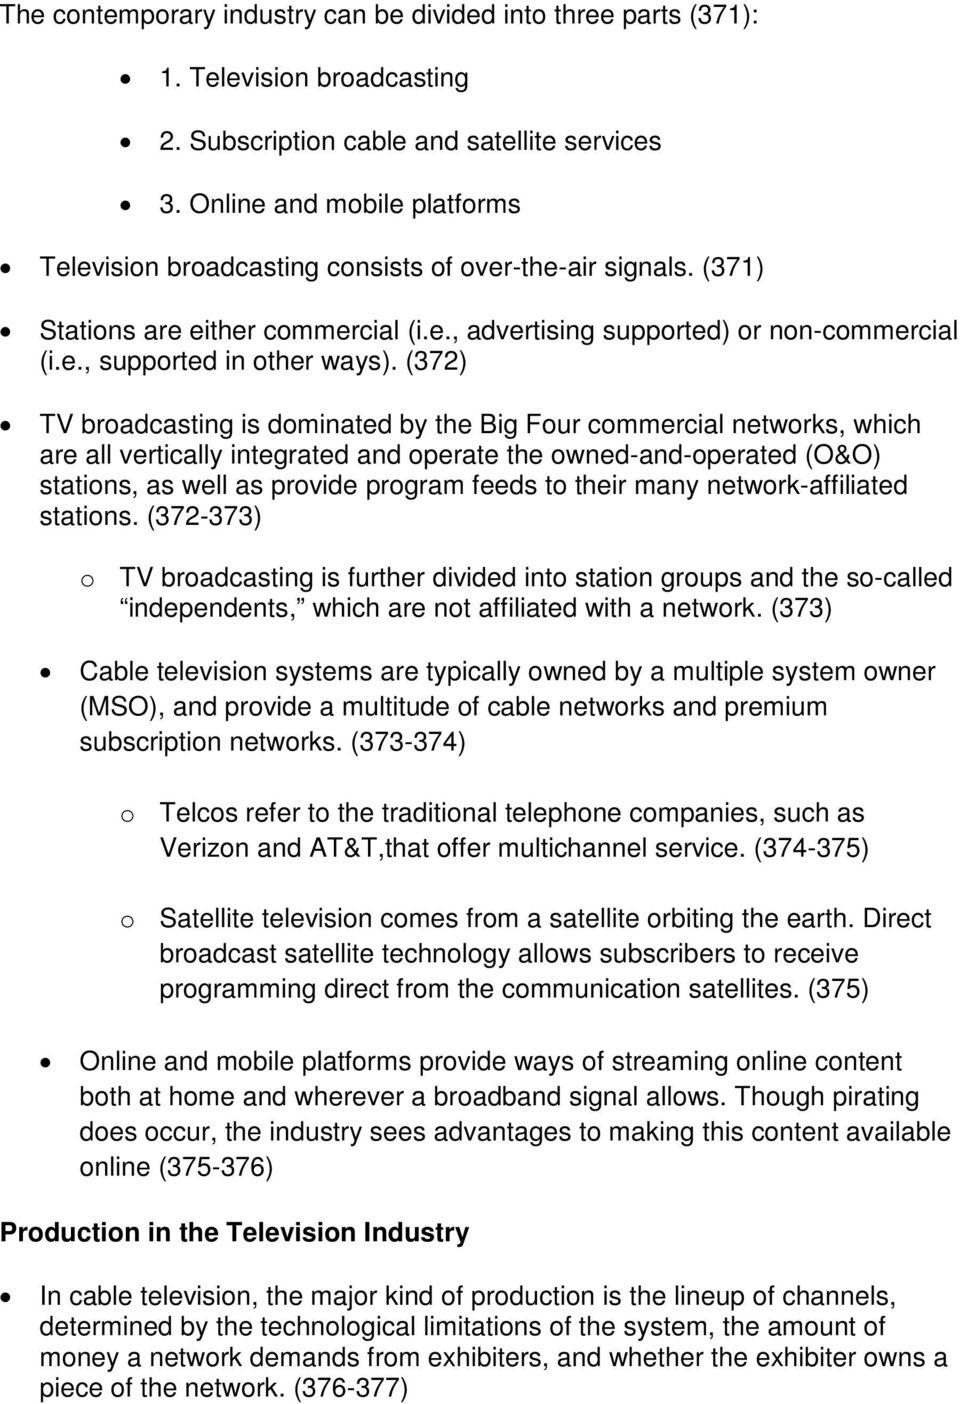 (372) TV broadcasting is dominated by the Big Four commercial networks, which are all vertically integrated and operate the owned-and-operated (O&O) stations, as well as provide program feeds to